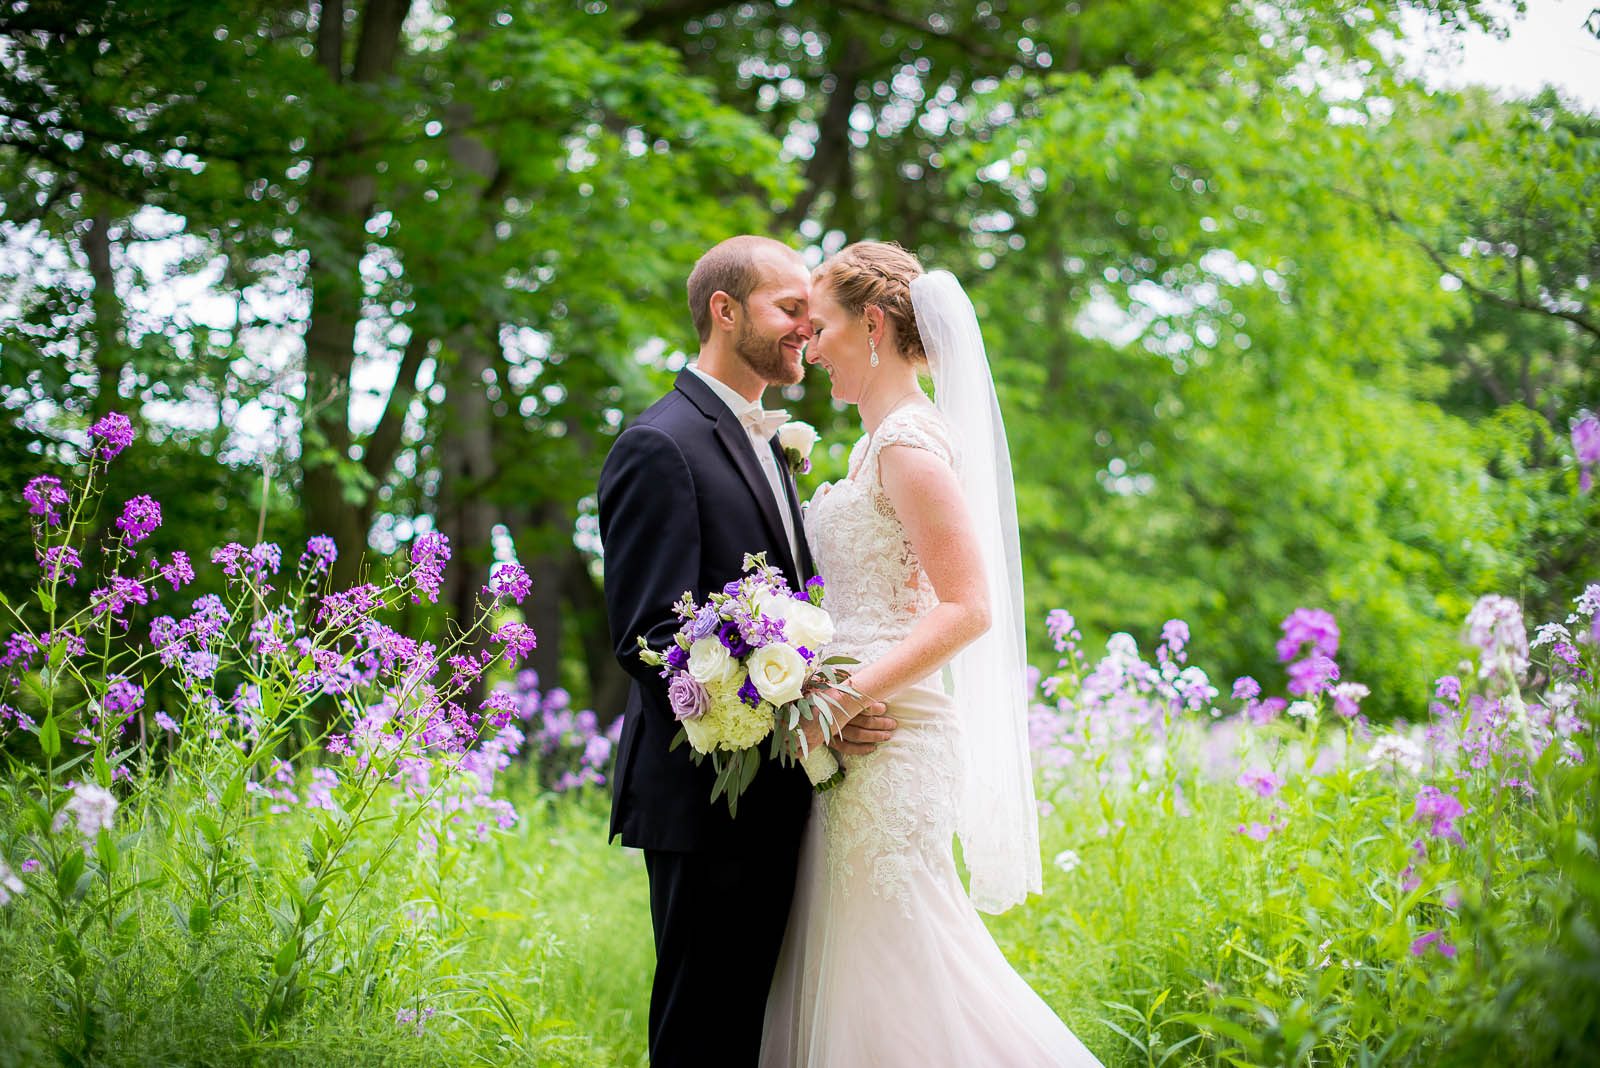 eric_and_christy_photographers_blog_wedding_katieandy-22